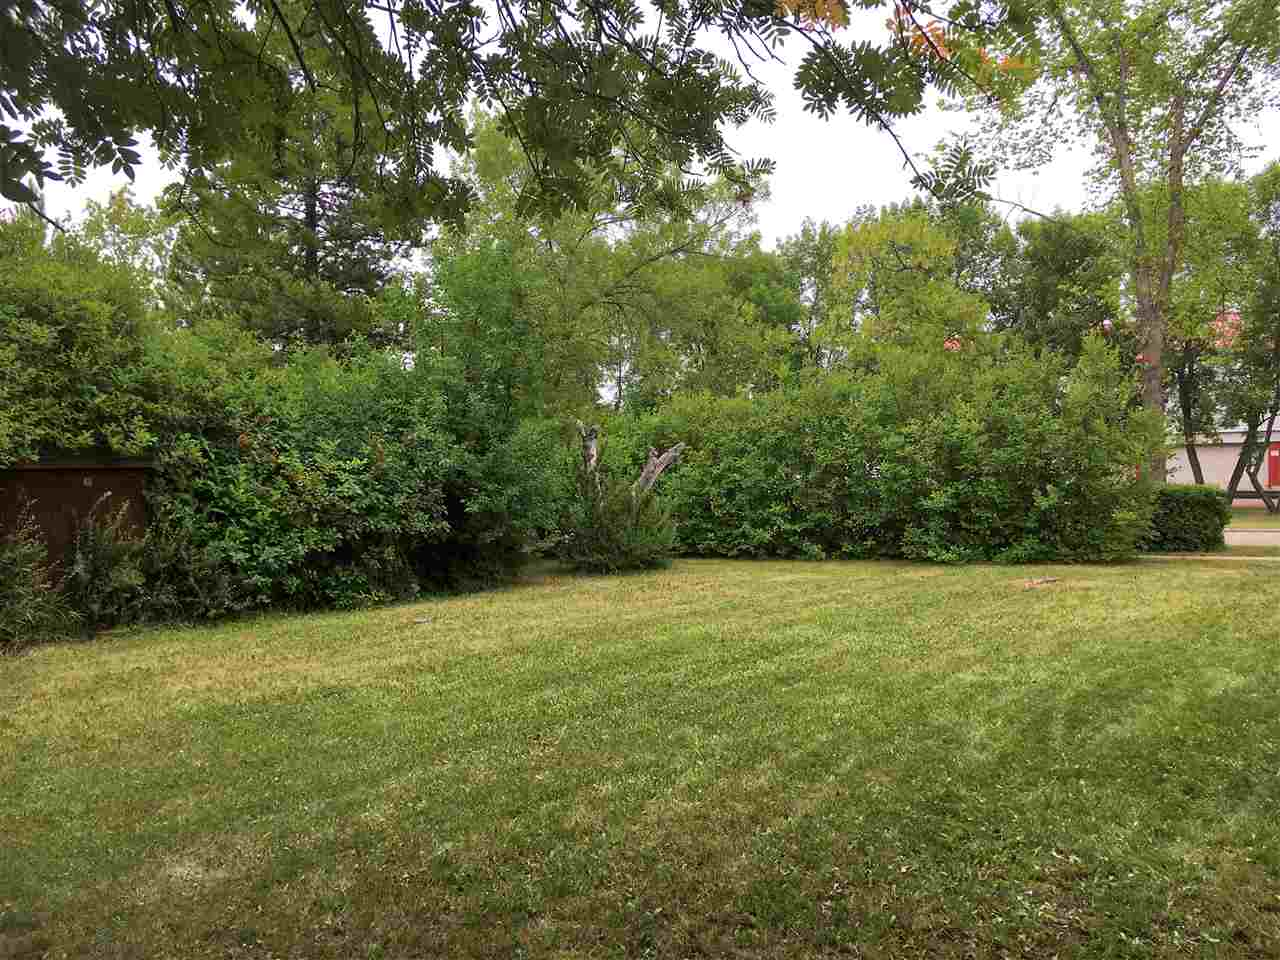 Approximately 46x113' lot in mature neighborhood across from the Community Centre and Arena. Approved for duplex. Zoned R2